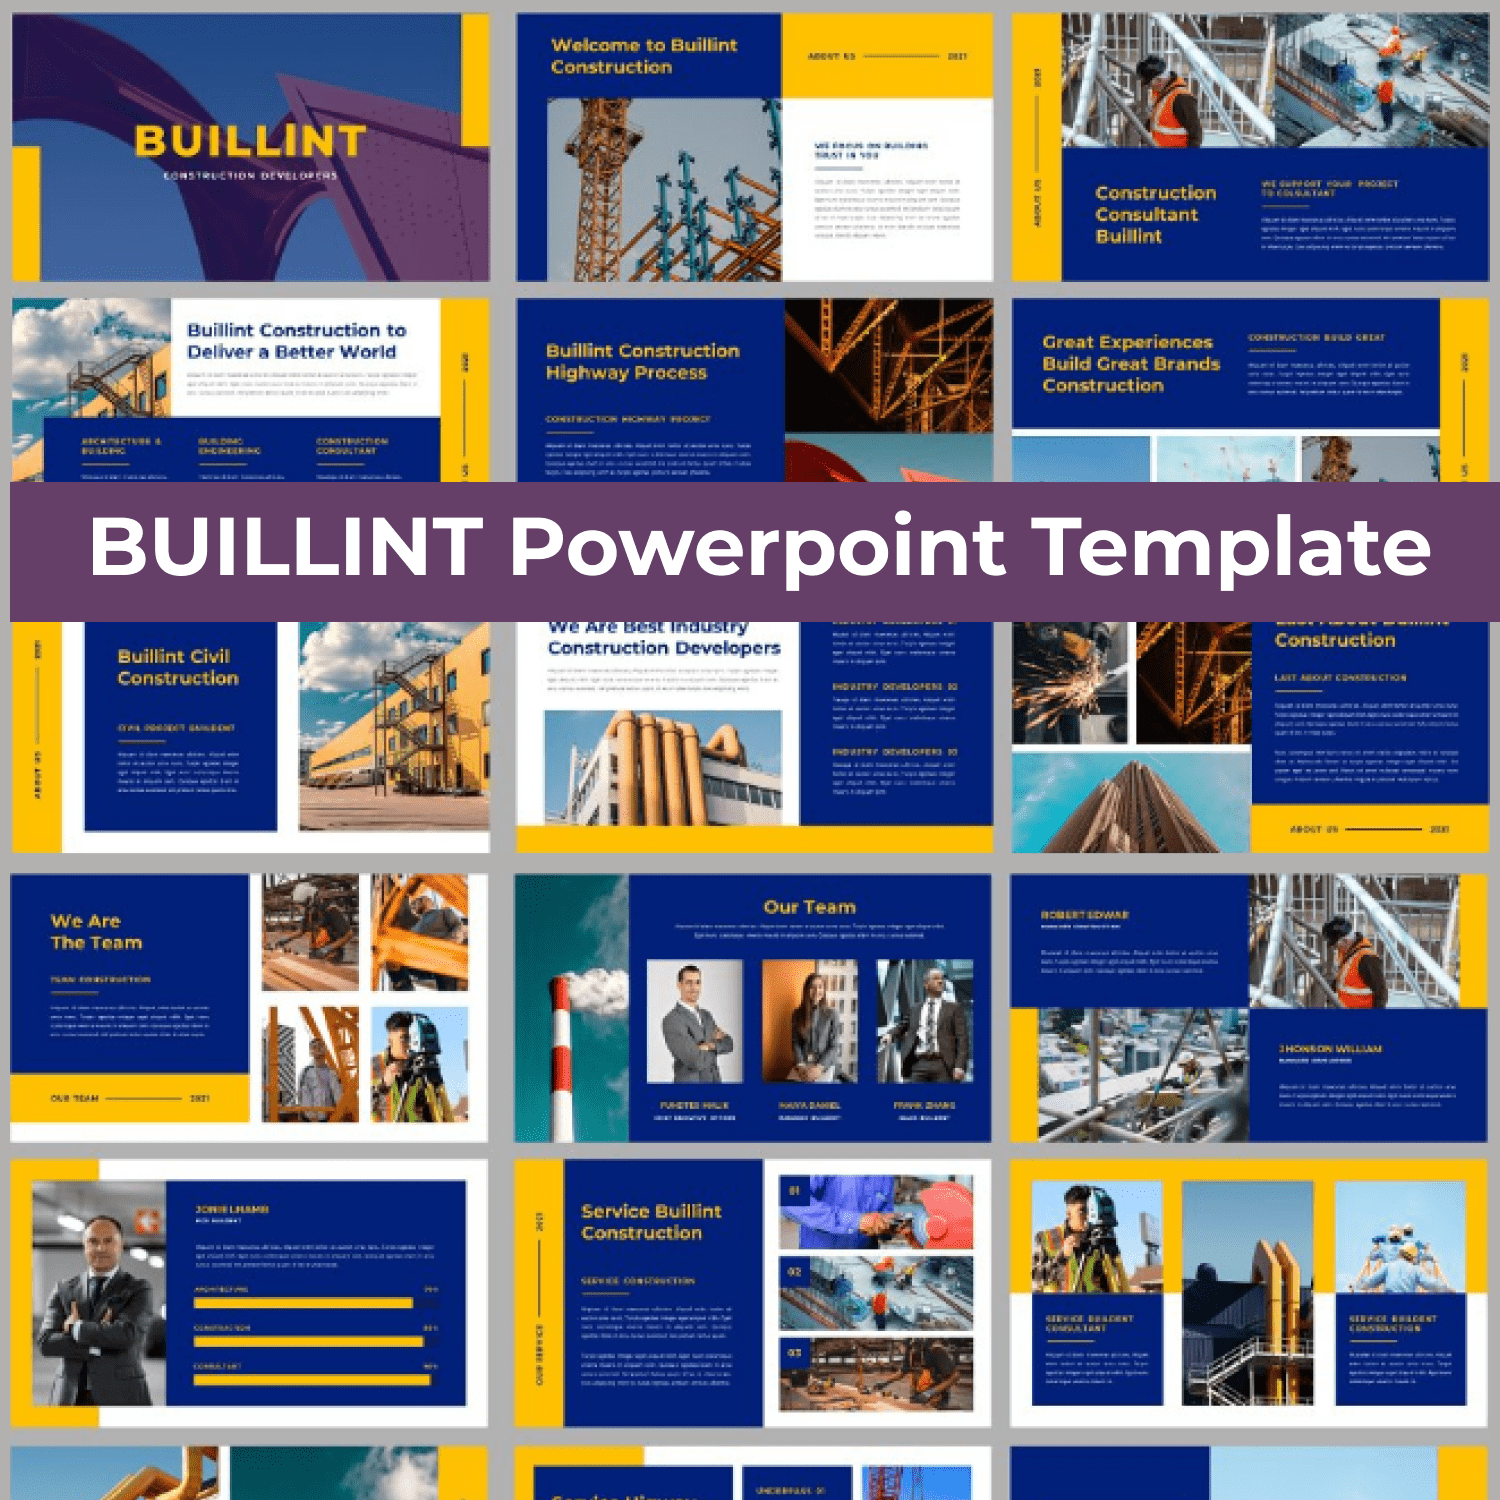 BUILLINT Powerpoint Template main cover.